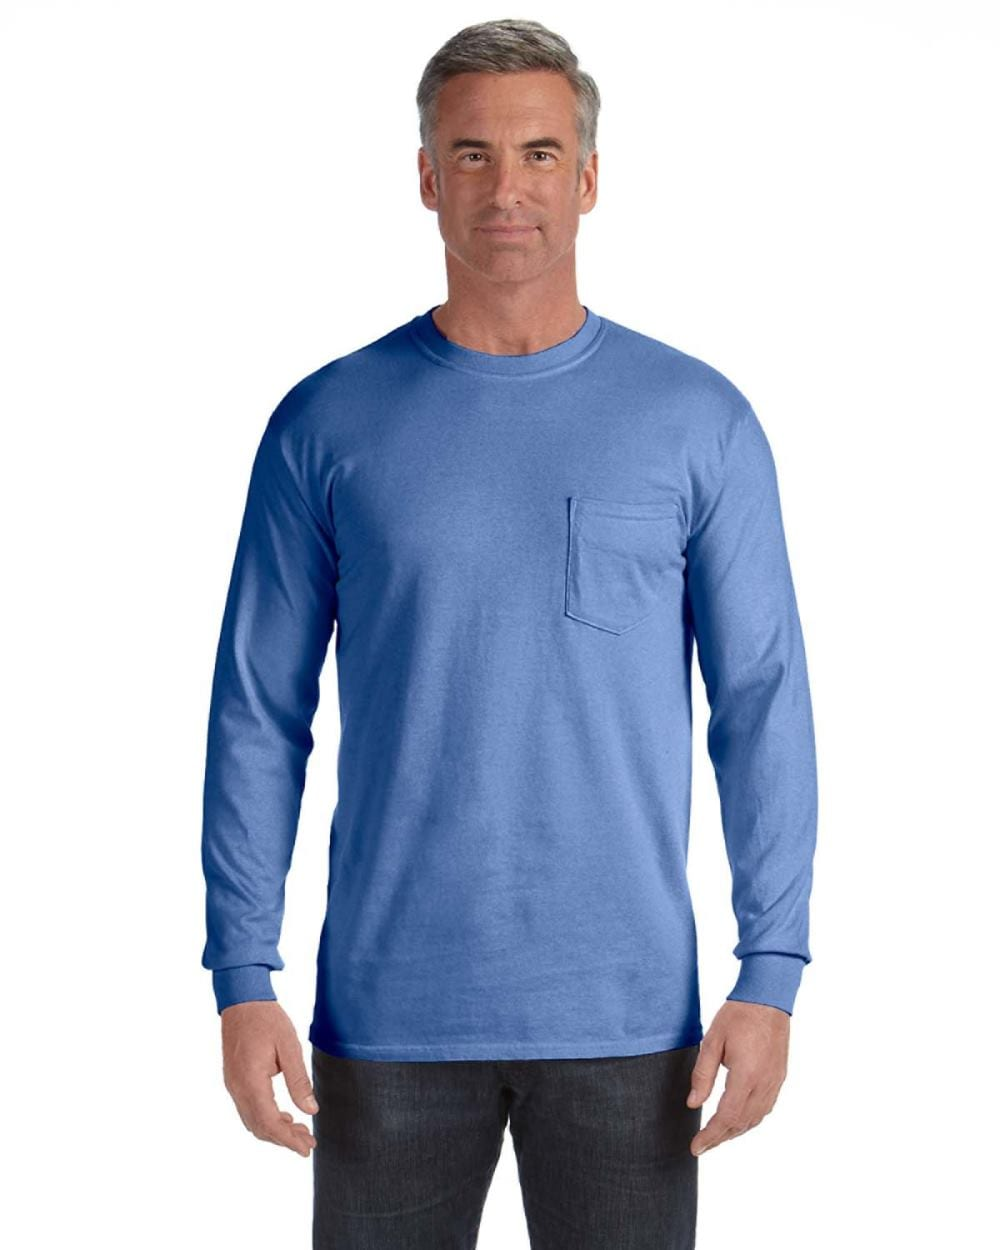 736cd153 comfort colors c4410 heavyweight RS custom long sleeve pocket t shirt flo  blue